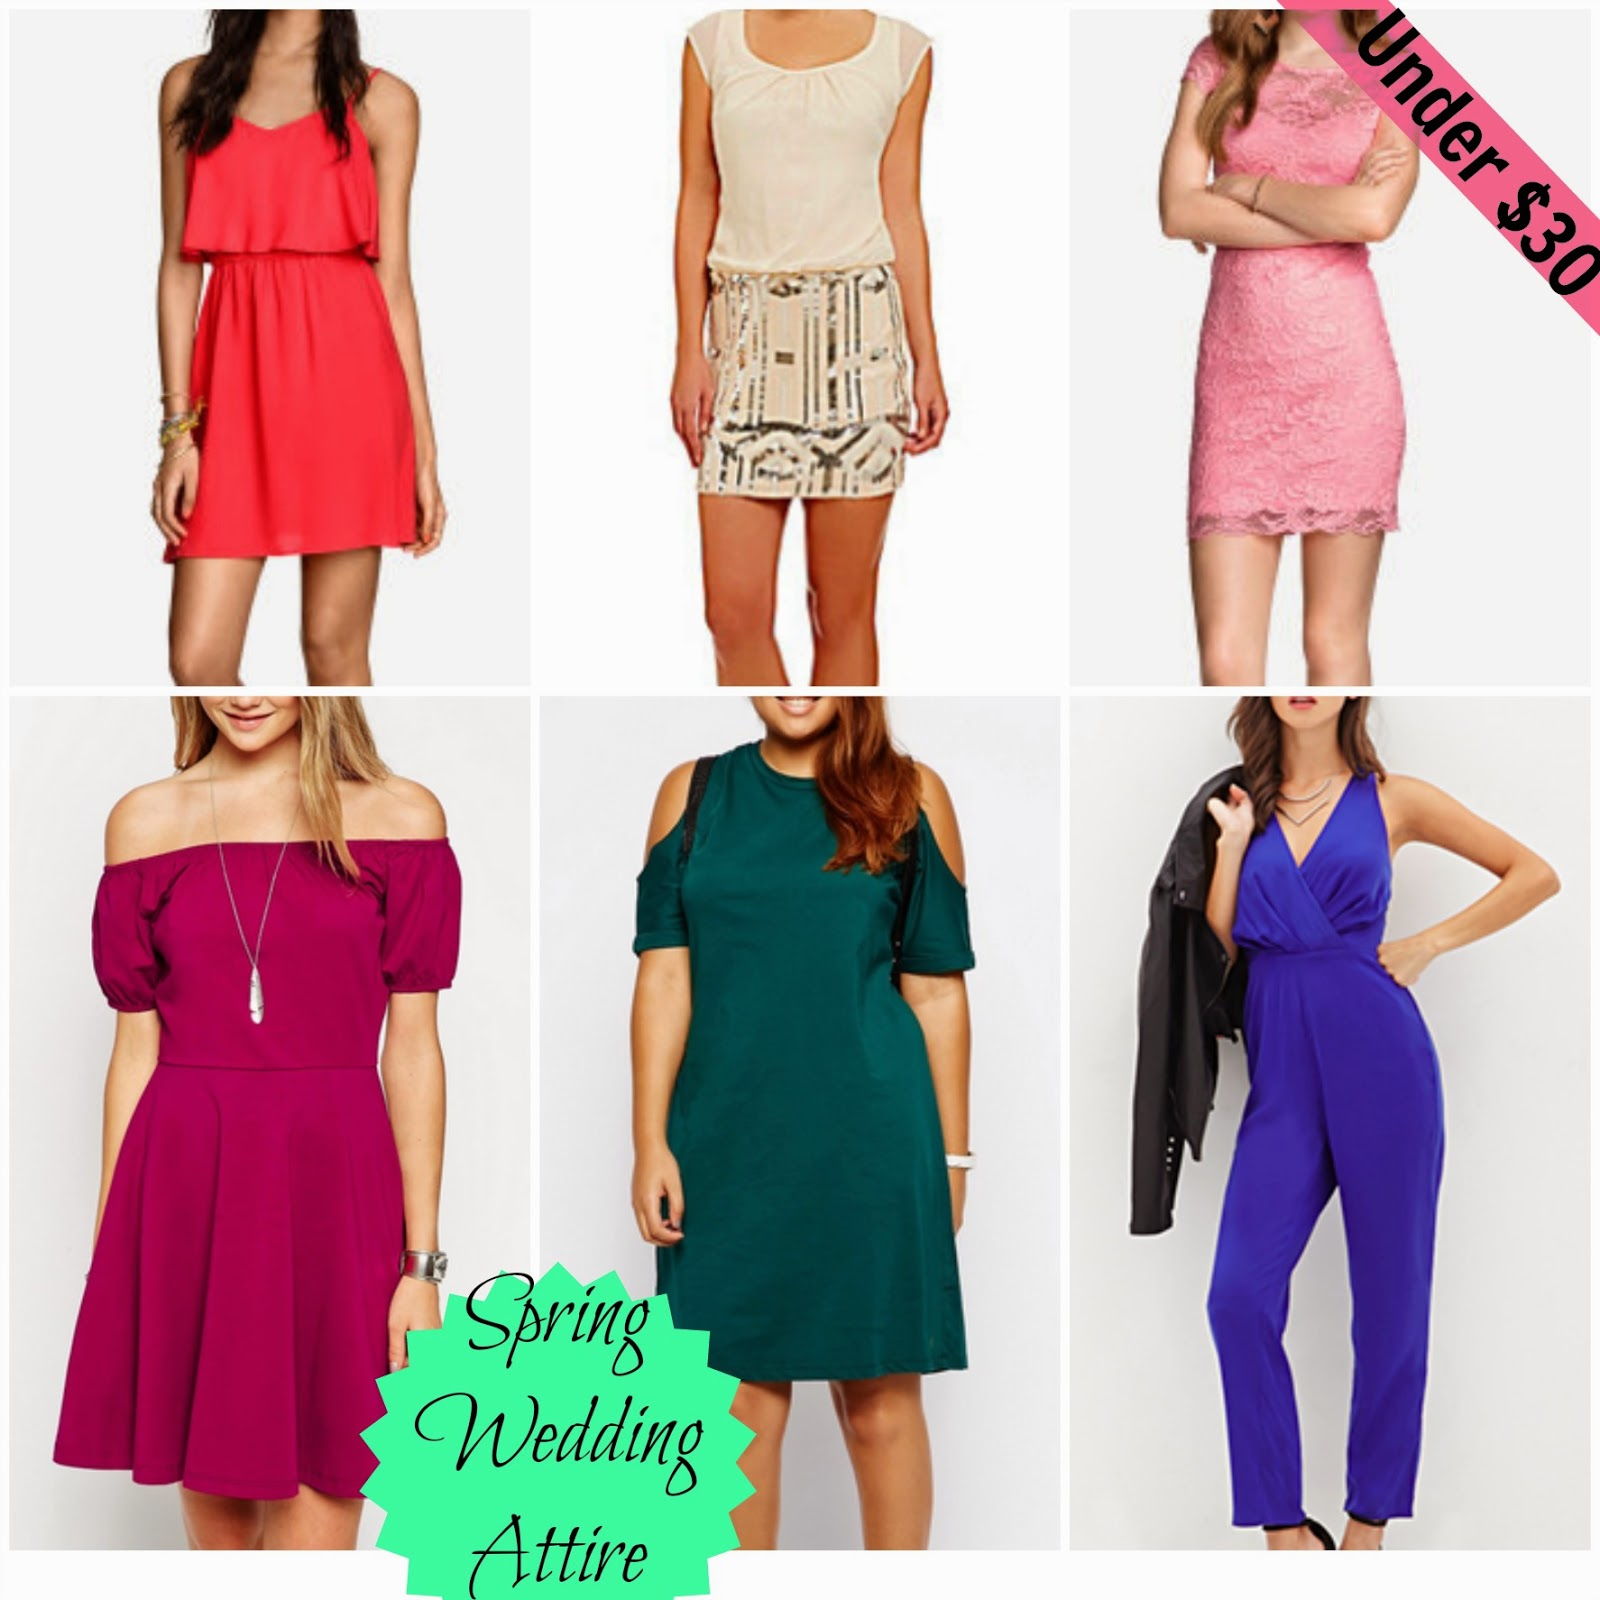 Affordable Spring Summer 2015 Wedding Guest Attire